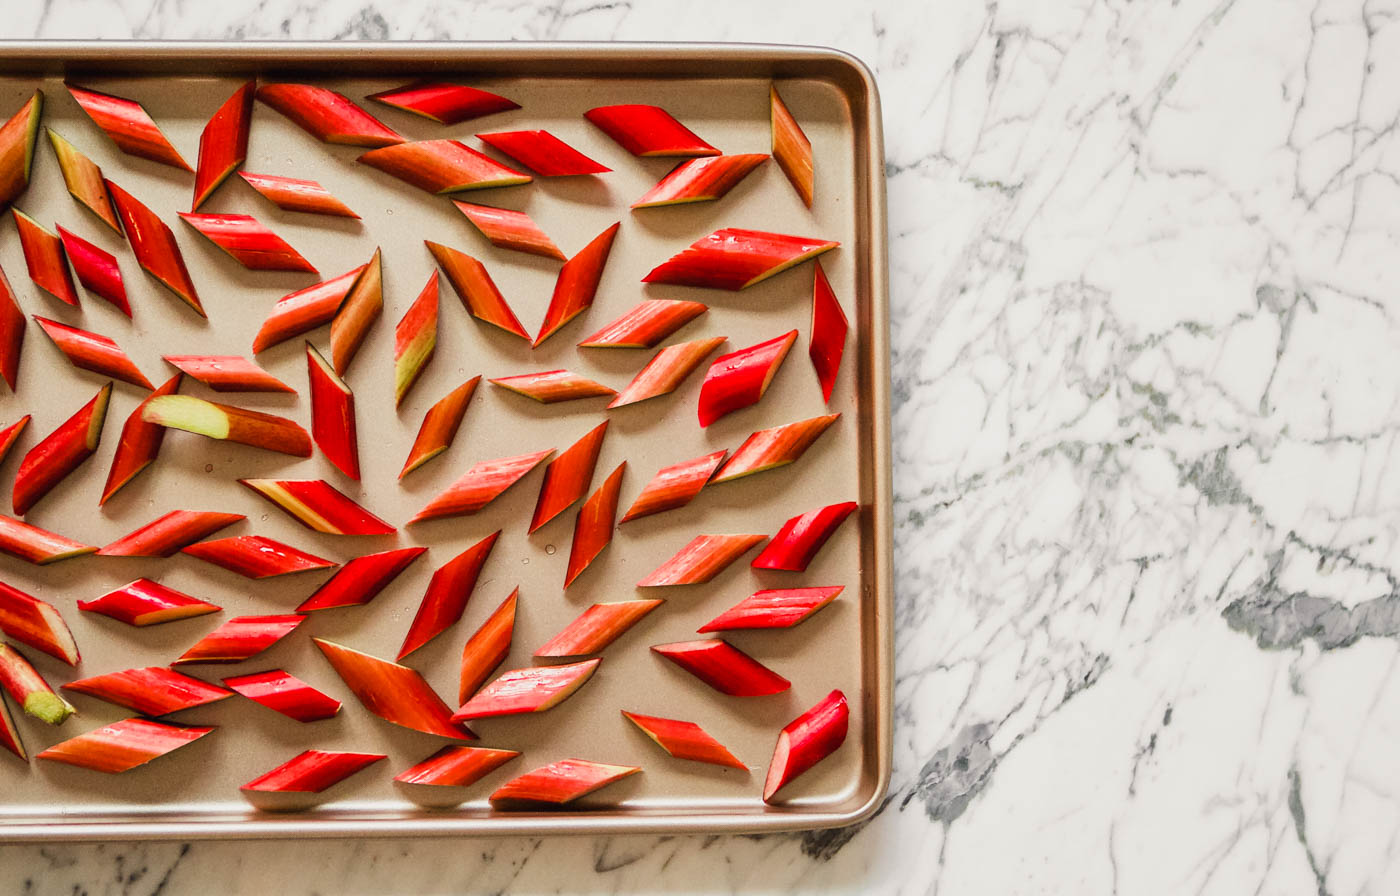 Photograph of rhubarb pieces scattered on a sheet pan.